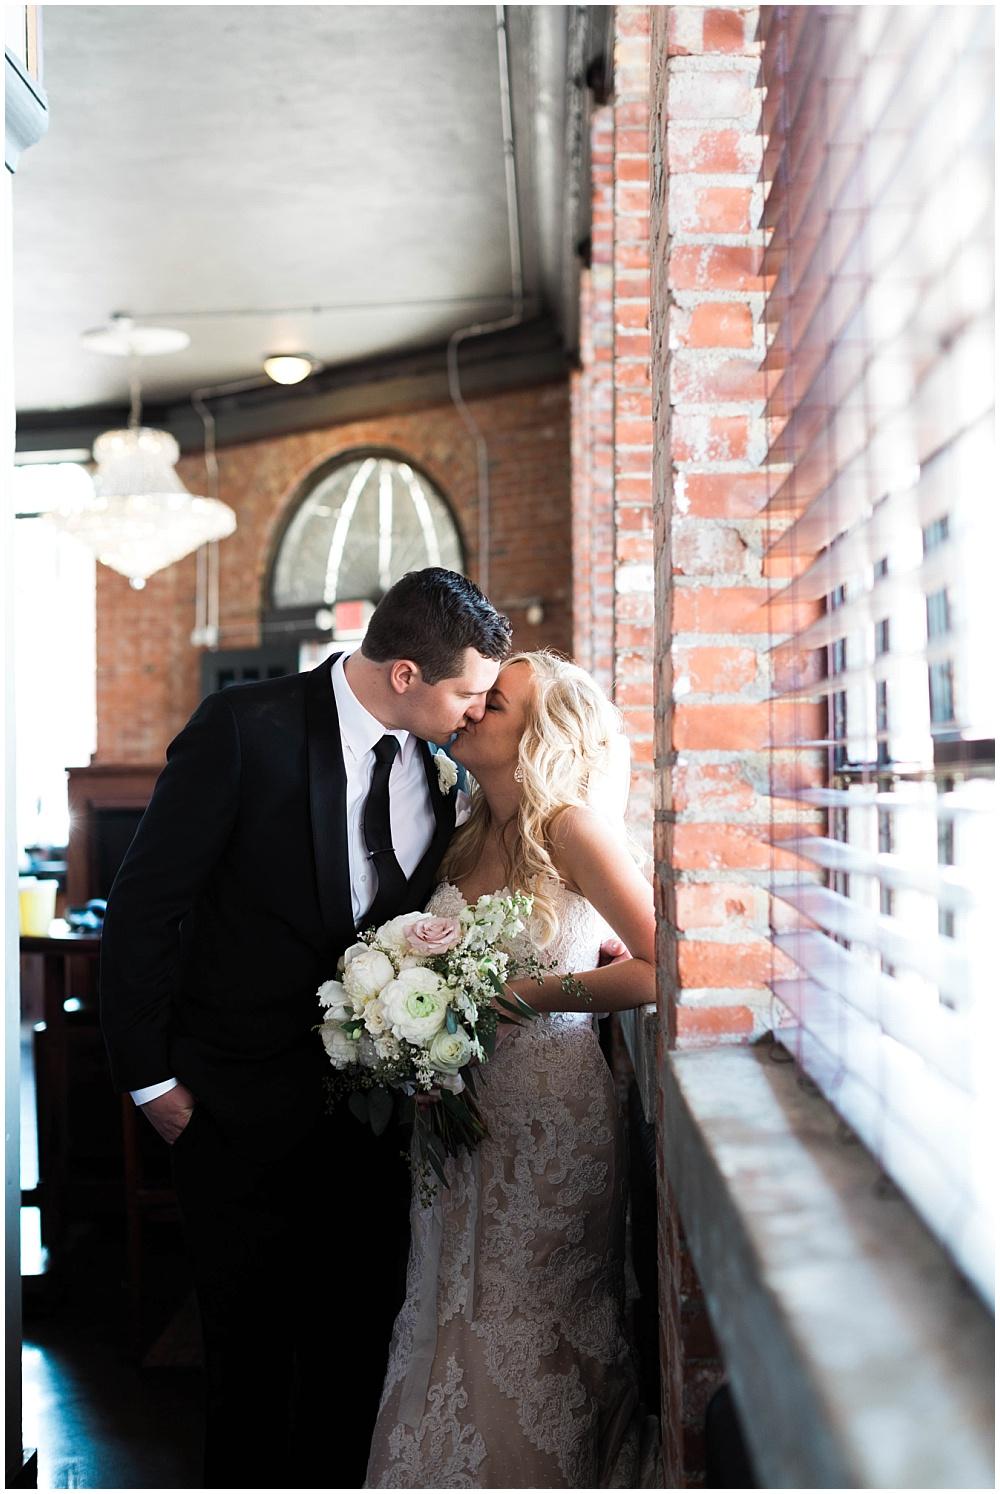 Bride and Groom Kissing | Downtown Indianapolis Wedding by Gabrielle Cheikh Photography & Jessica Dum Wedding Coordination